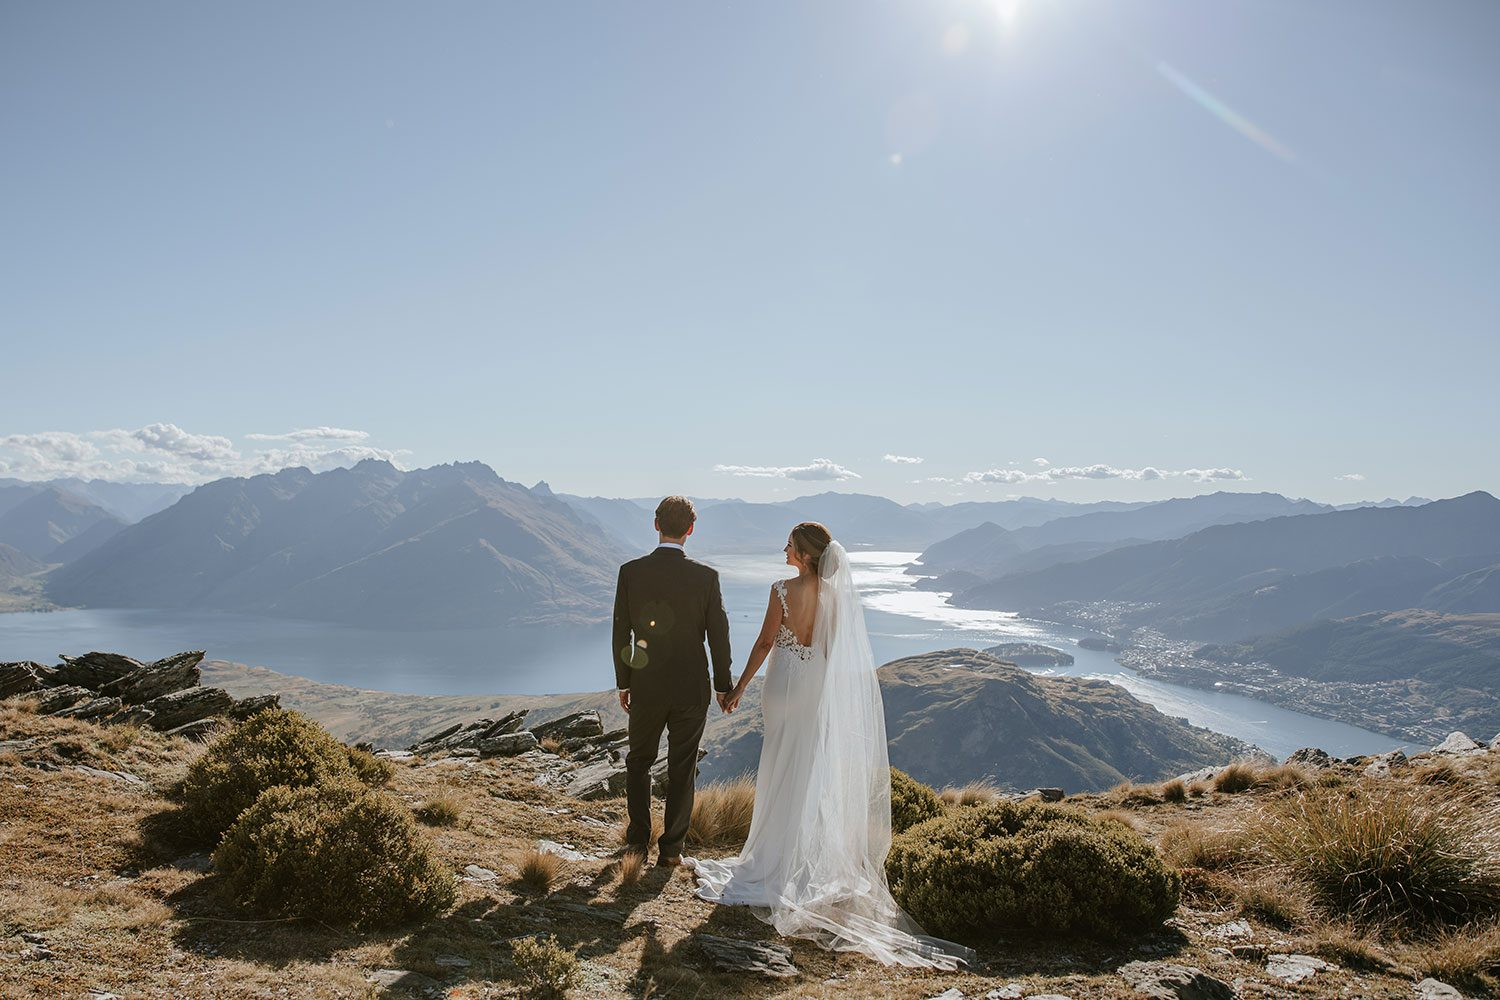 Bride wearing bespoke bridal gown with richly beaded lace over sheer tulle bodice and low back from Auckland wedding dress designer Vinka designs - holding hands facing view